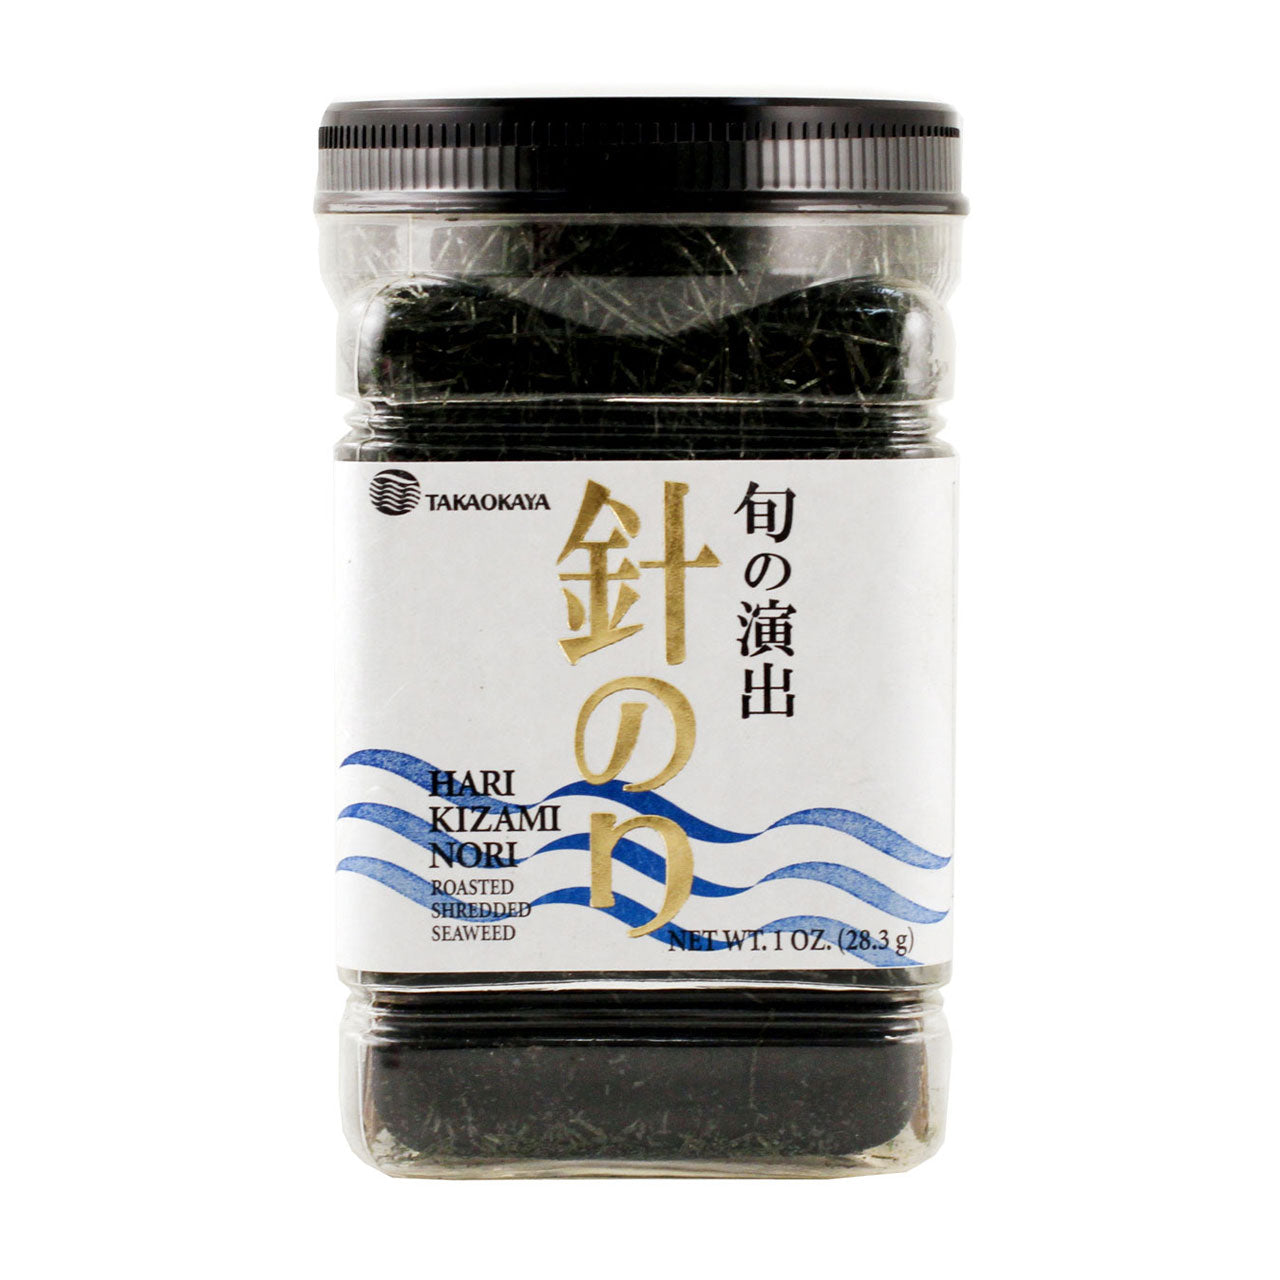 Takaokaya Roasted Shredded Seaweed Kizami Nori